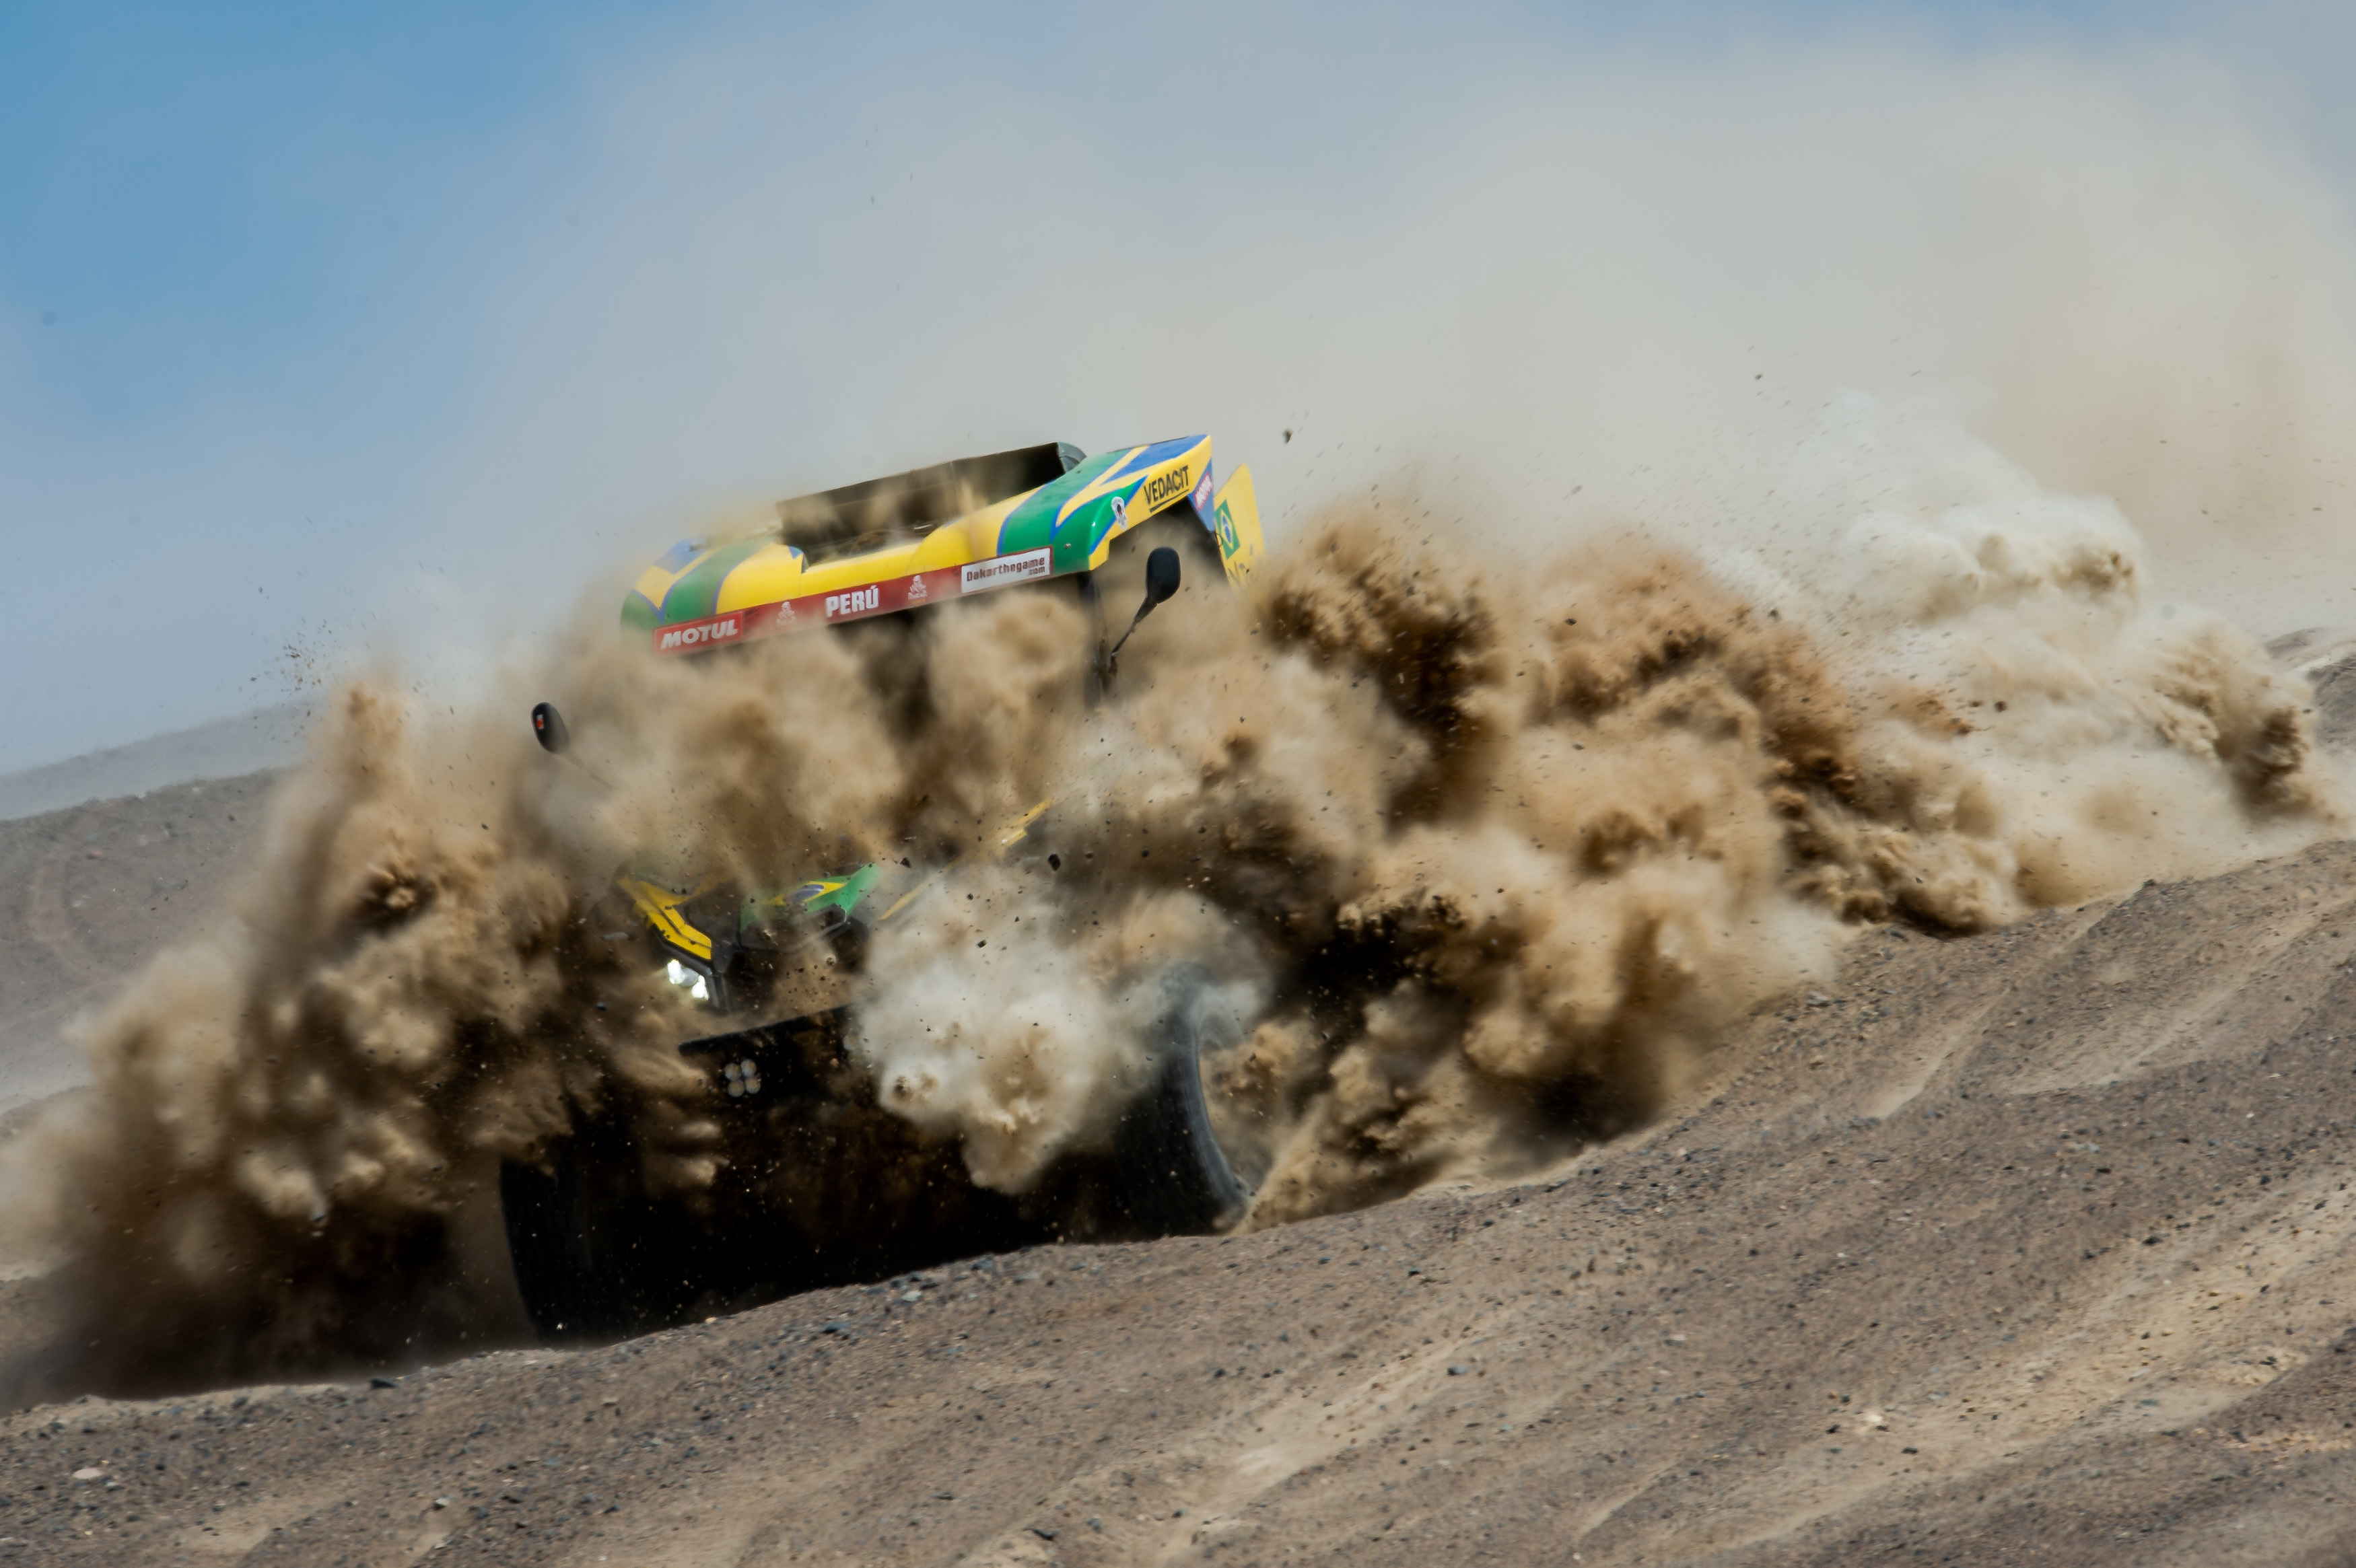 An excellent day for X Rally Team in the Dakar